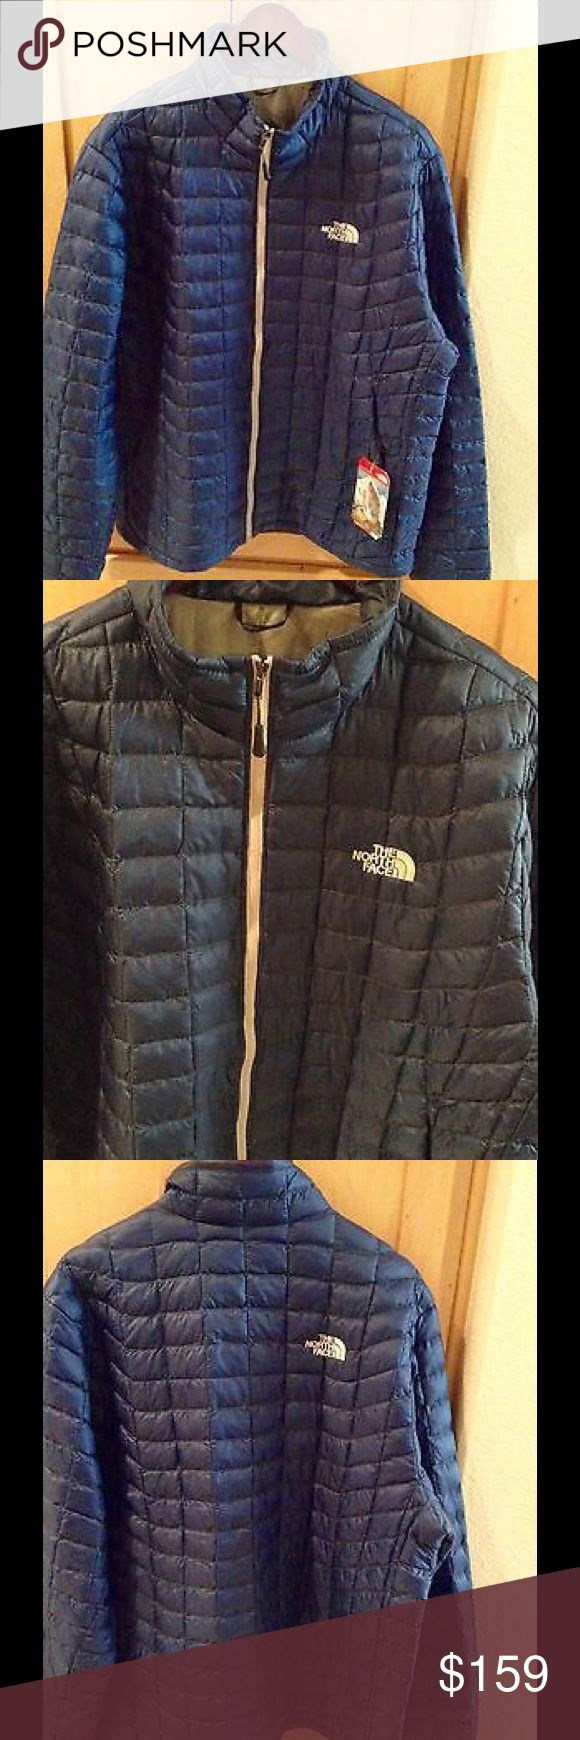 NEW The North Face Men's Thermoball Jacket Brand new Men's Thermoball jacket in XXL in Dish Blue. No trade.  Price is firm. North Face Jackets & Coats